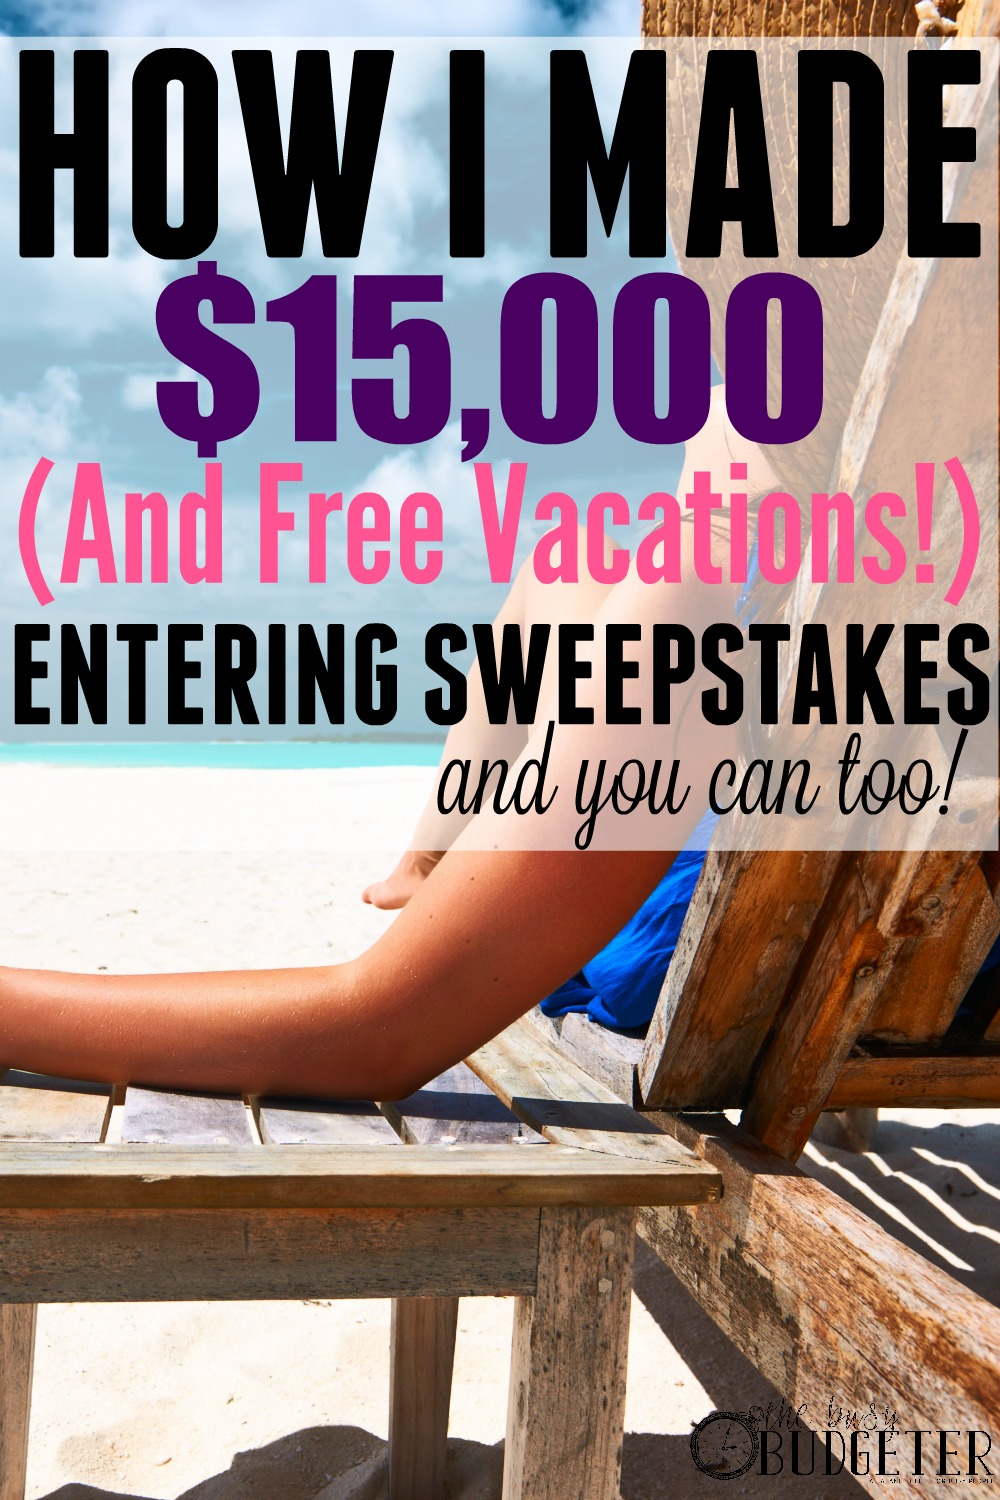 How I made $15,000 and free vacations entering sweepstakes and you can too! OMG! This is insane! A dozen vacations and that much money from a sweepstakes hobby?! (I didn't even know entering sweepstakes was a hobby!) And I am over here spending $100/month on craft supplies. Fail. What a great idea to make extra money with a hobby!